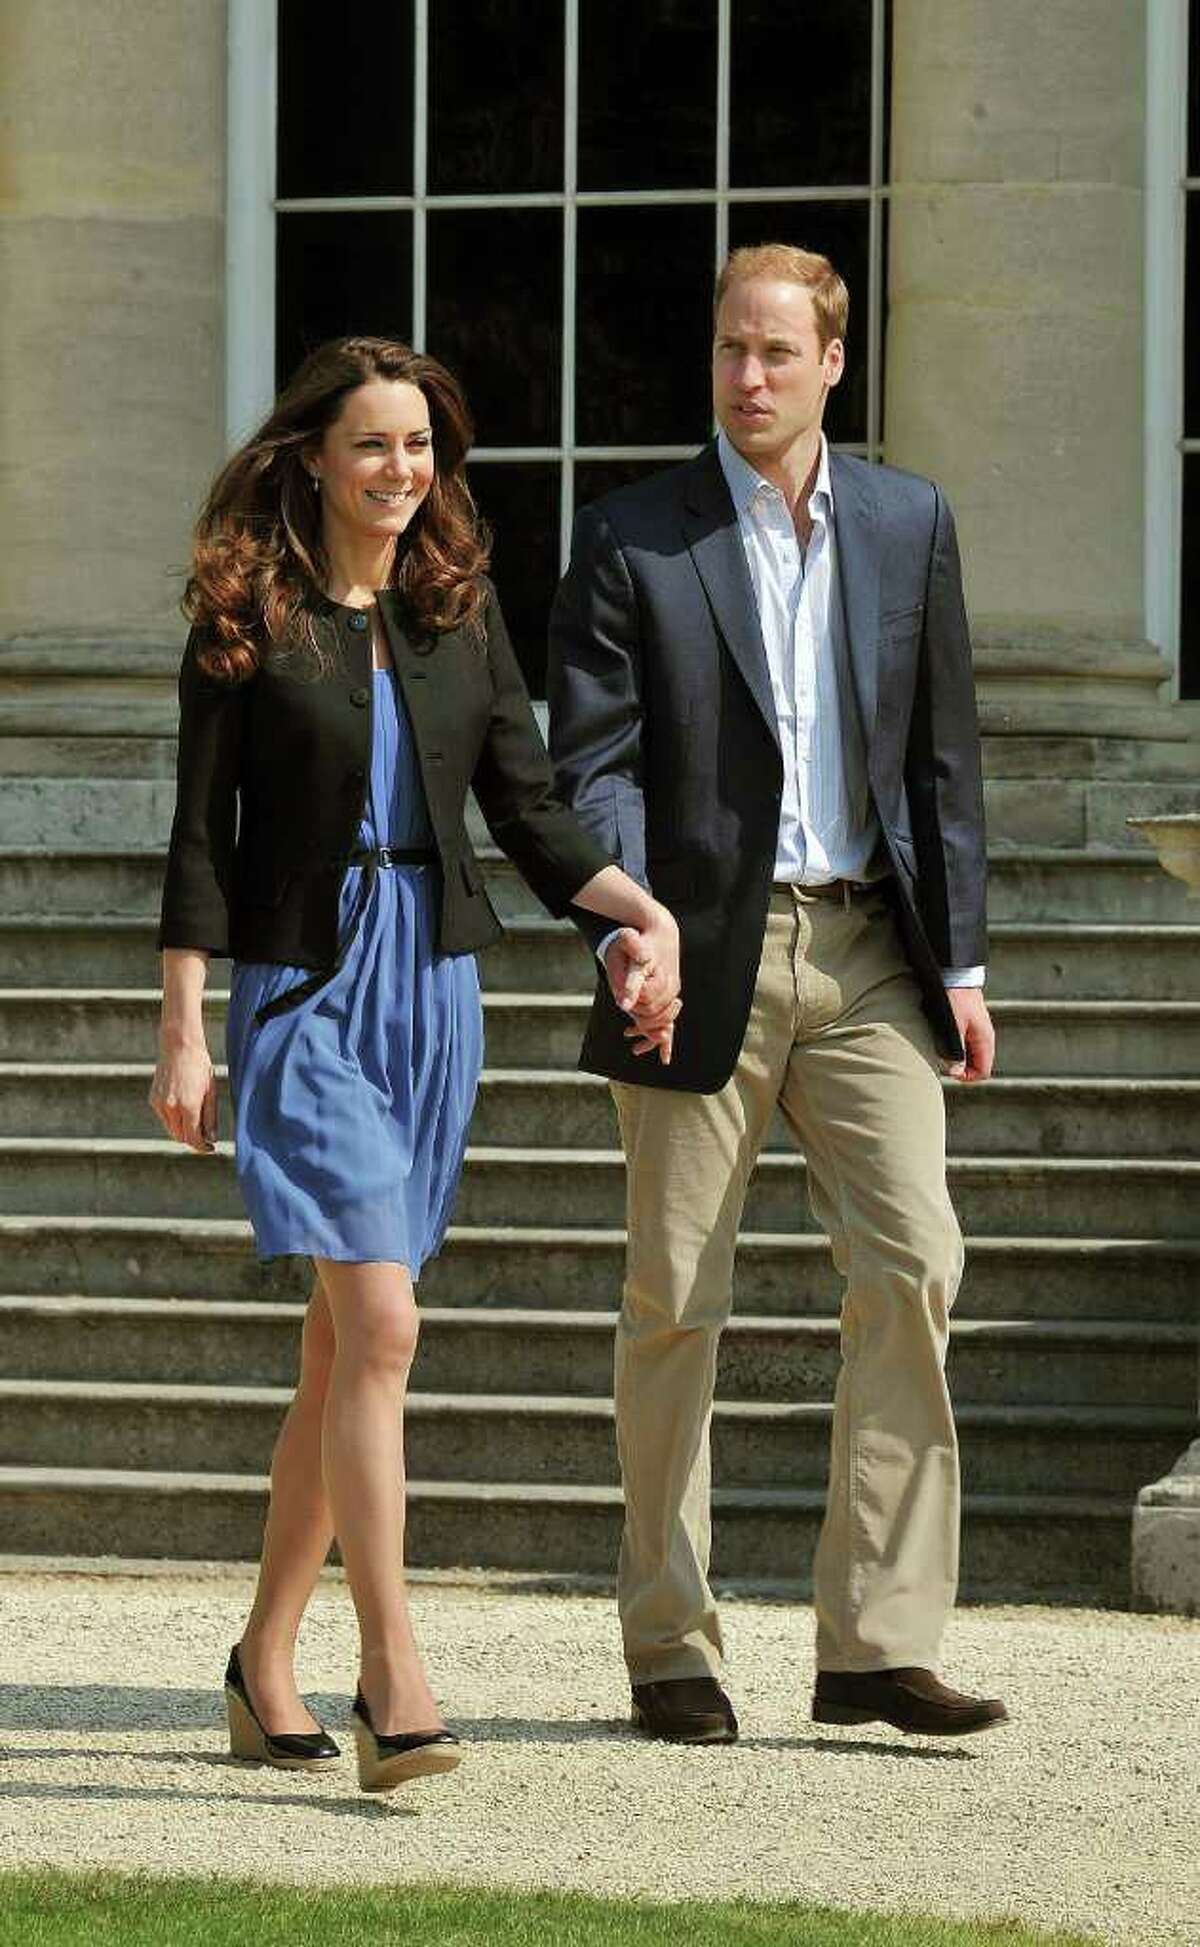 The Duke and Duchess of Cambridge walk hand in hand from Buckingham Palace in London Saturday April 30 2011, the day after their wedding. (AP Photo/ John Stillwell, pool)